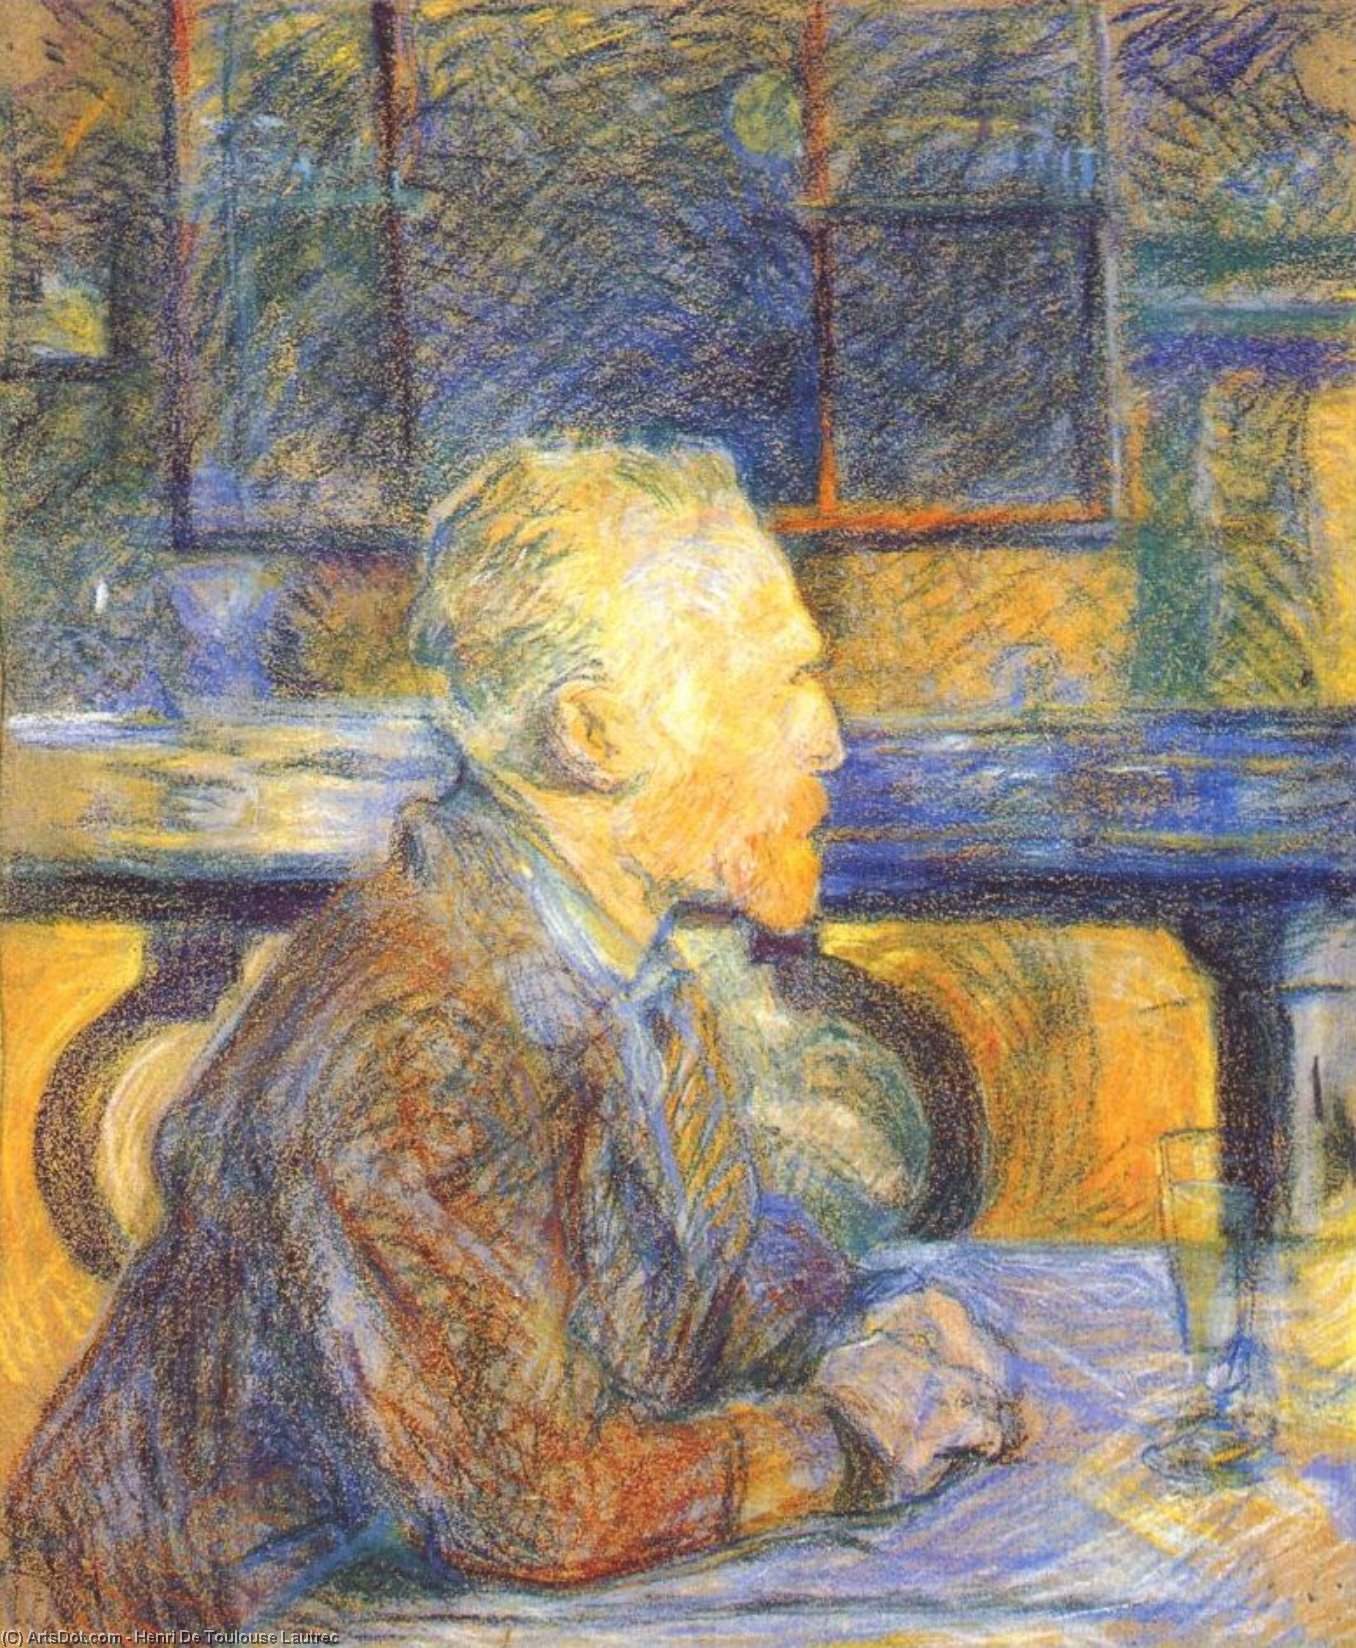 vincent vangogh, 1887 de Henri De Toulouse Lautrec (1864-1901, France)